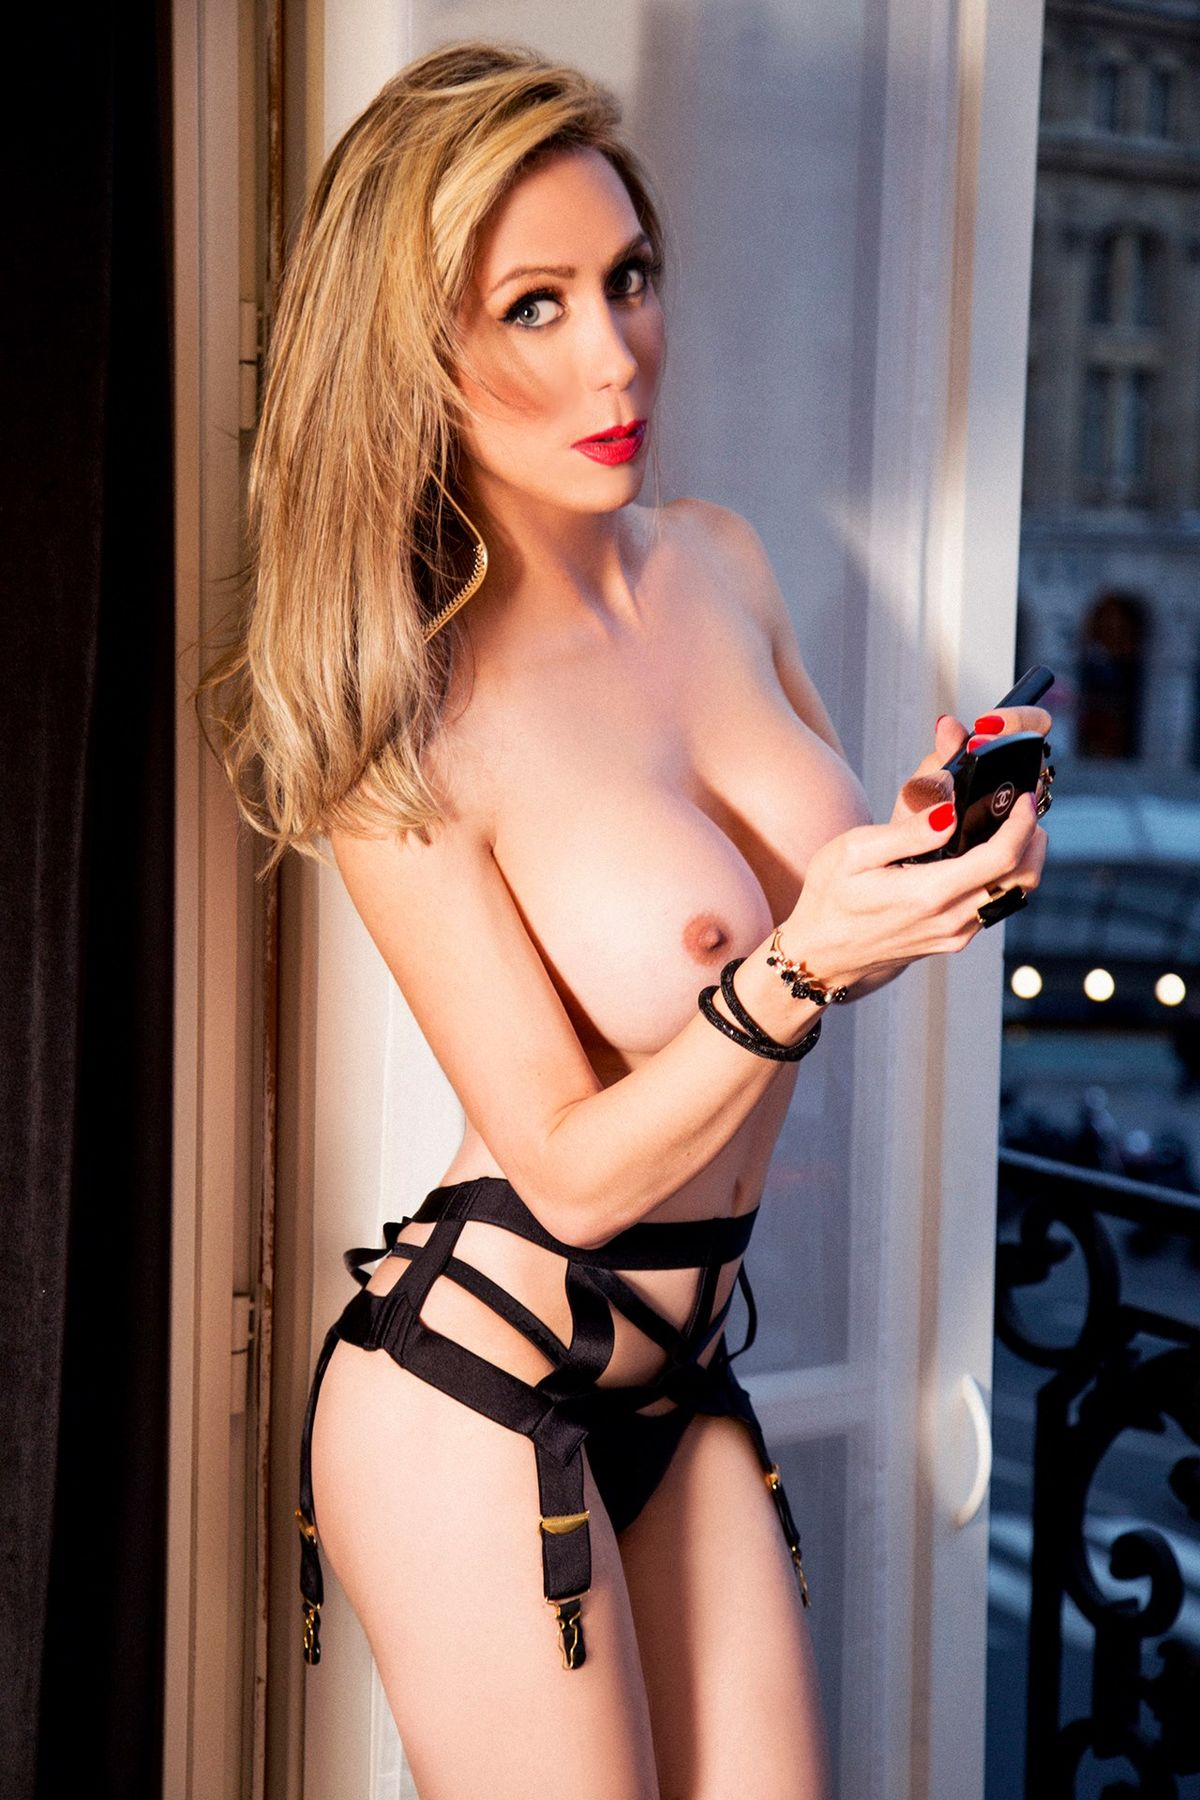 Lube excellent. shemale escorts in paris I'm tellin